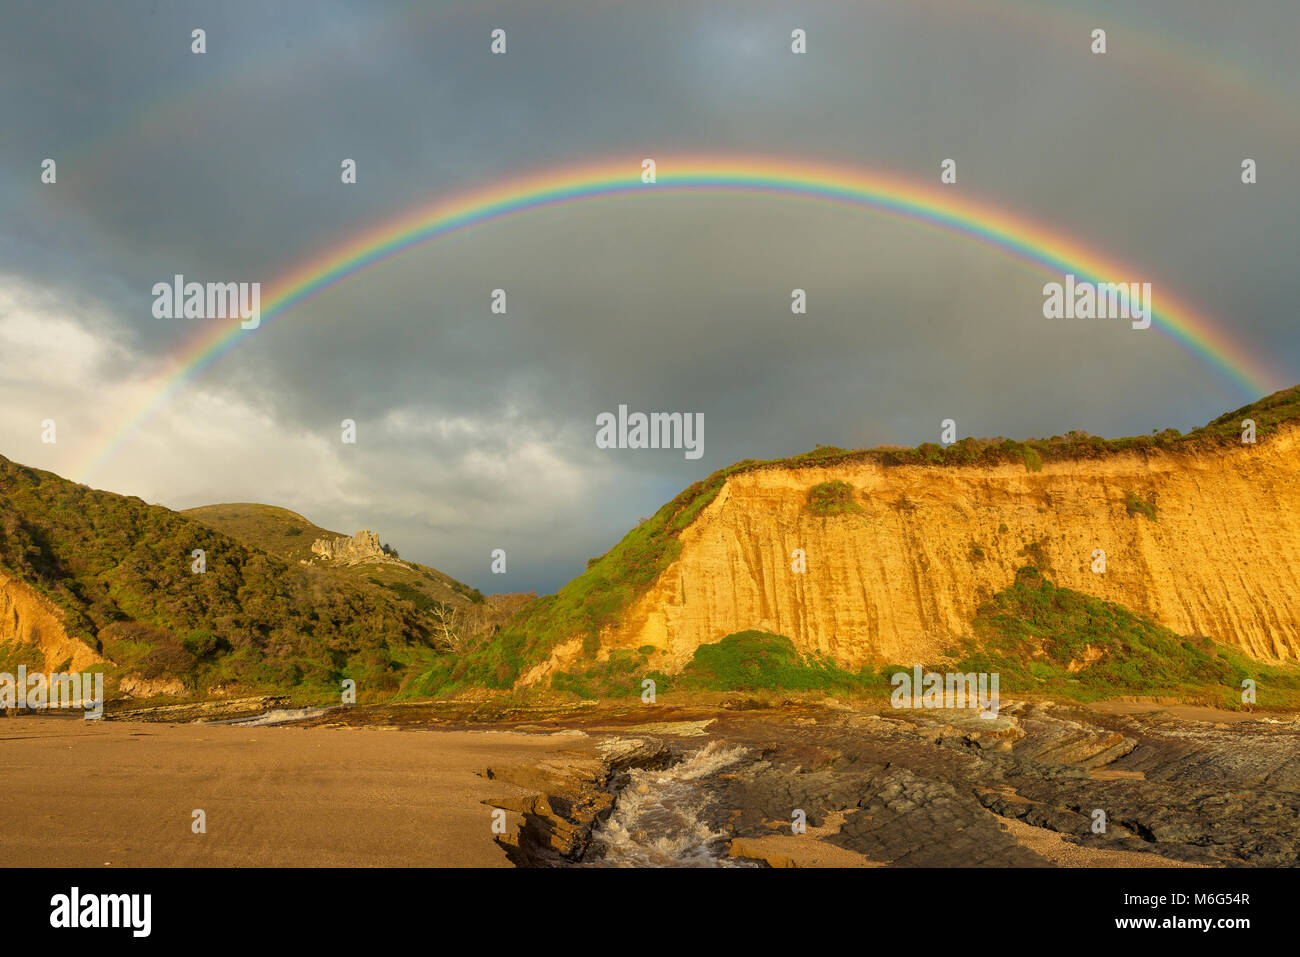 Rainbow, skulpturelle Strand, Point Reyes National Seashore, Marin County, Kalifornien Stockbild